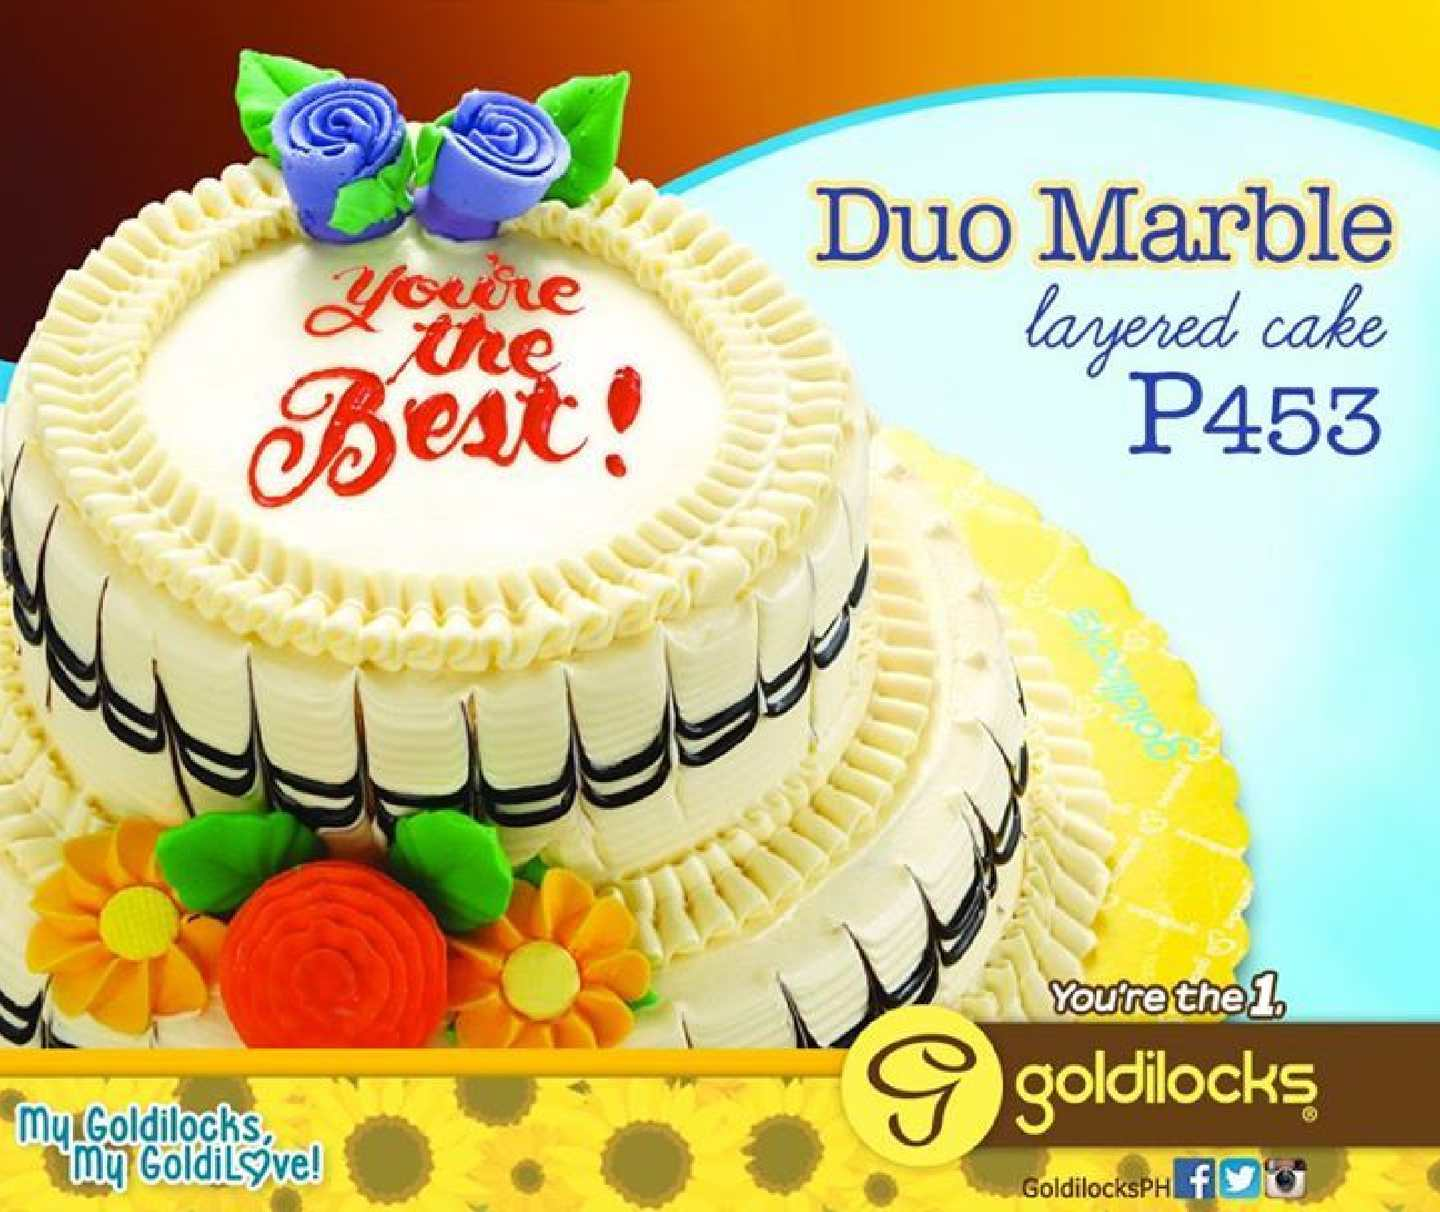 Amazing Calameo Have A Duo Marble Layered Cake For Only P453 From Funny Birthday Cards Online Alyptdamsfinfo